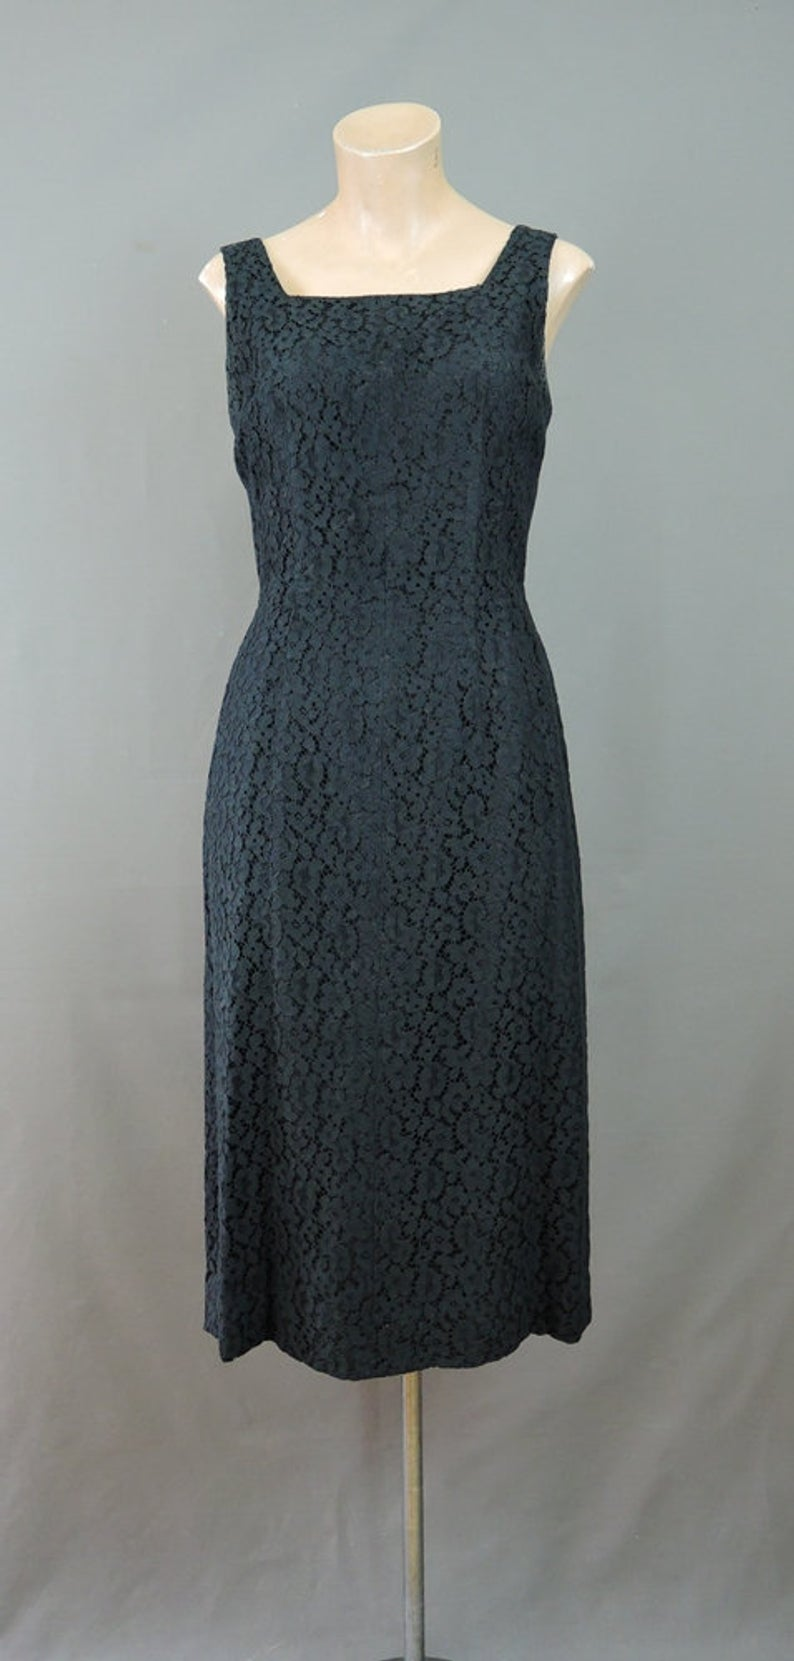 Vintage Black Lace Cocktail Dress with Tails, Party Dress 1960s fits 36 bust